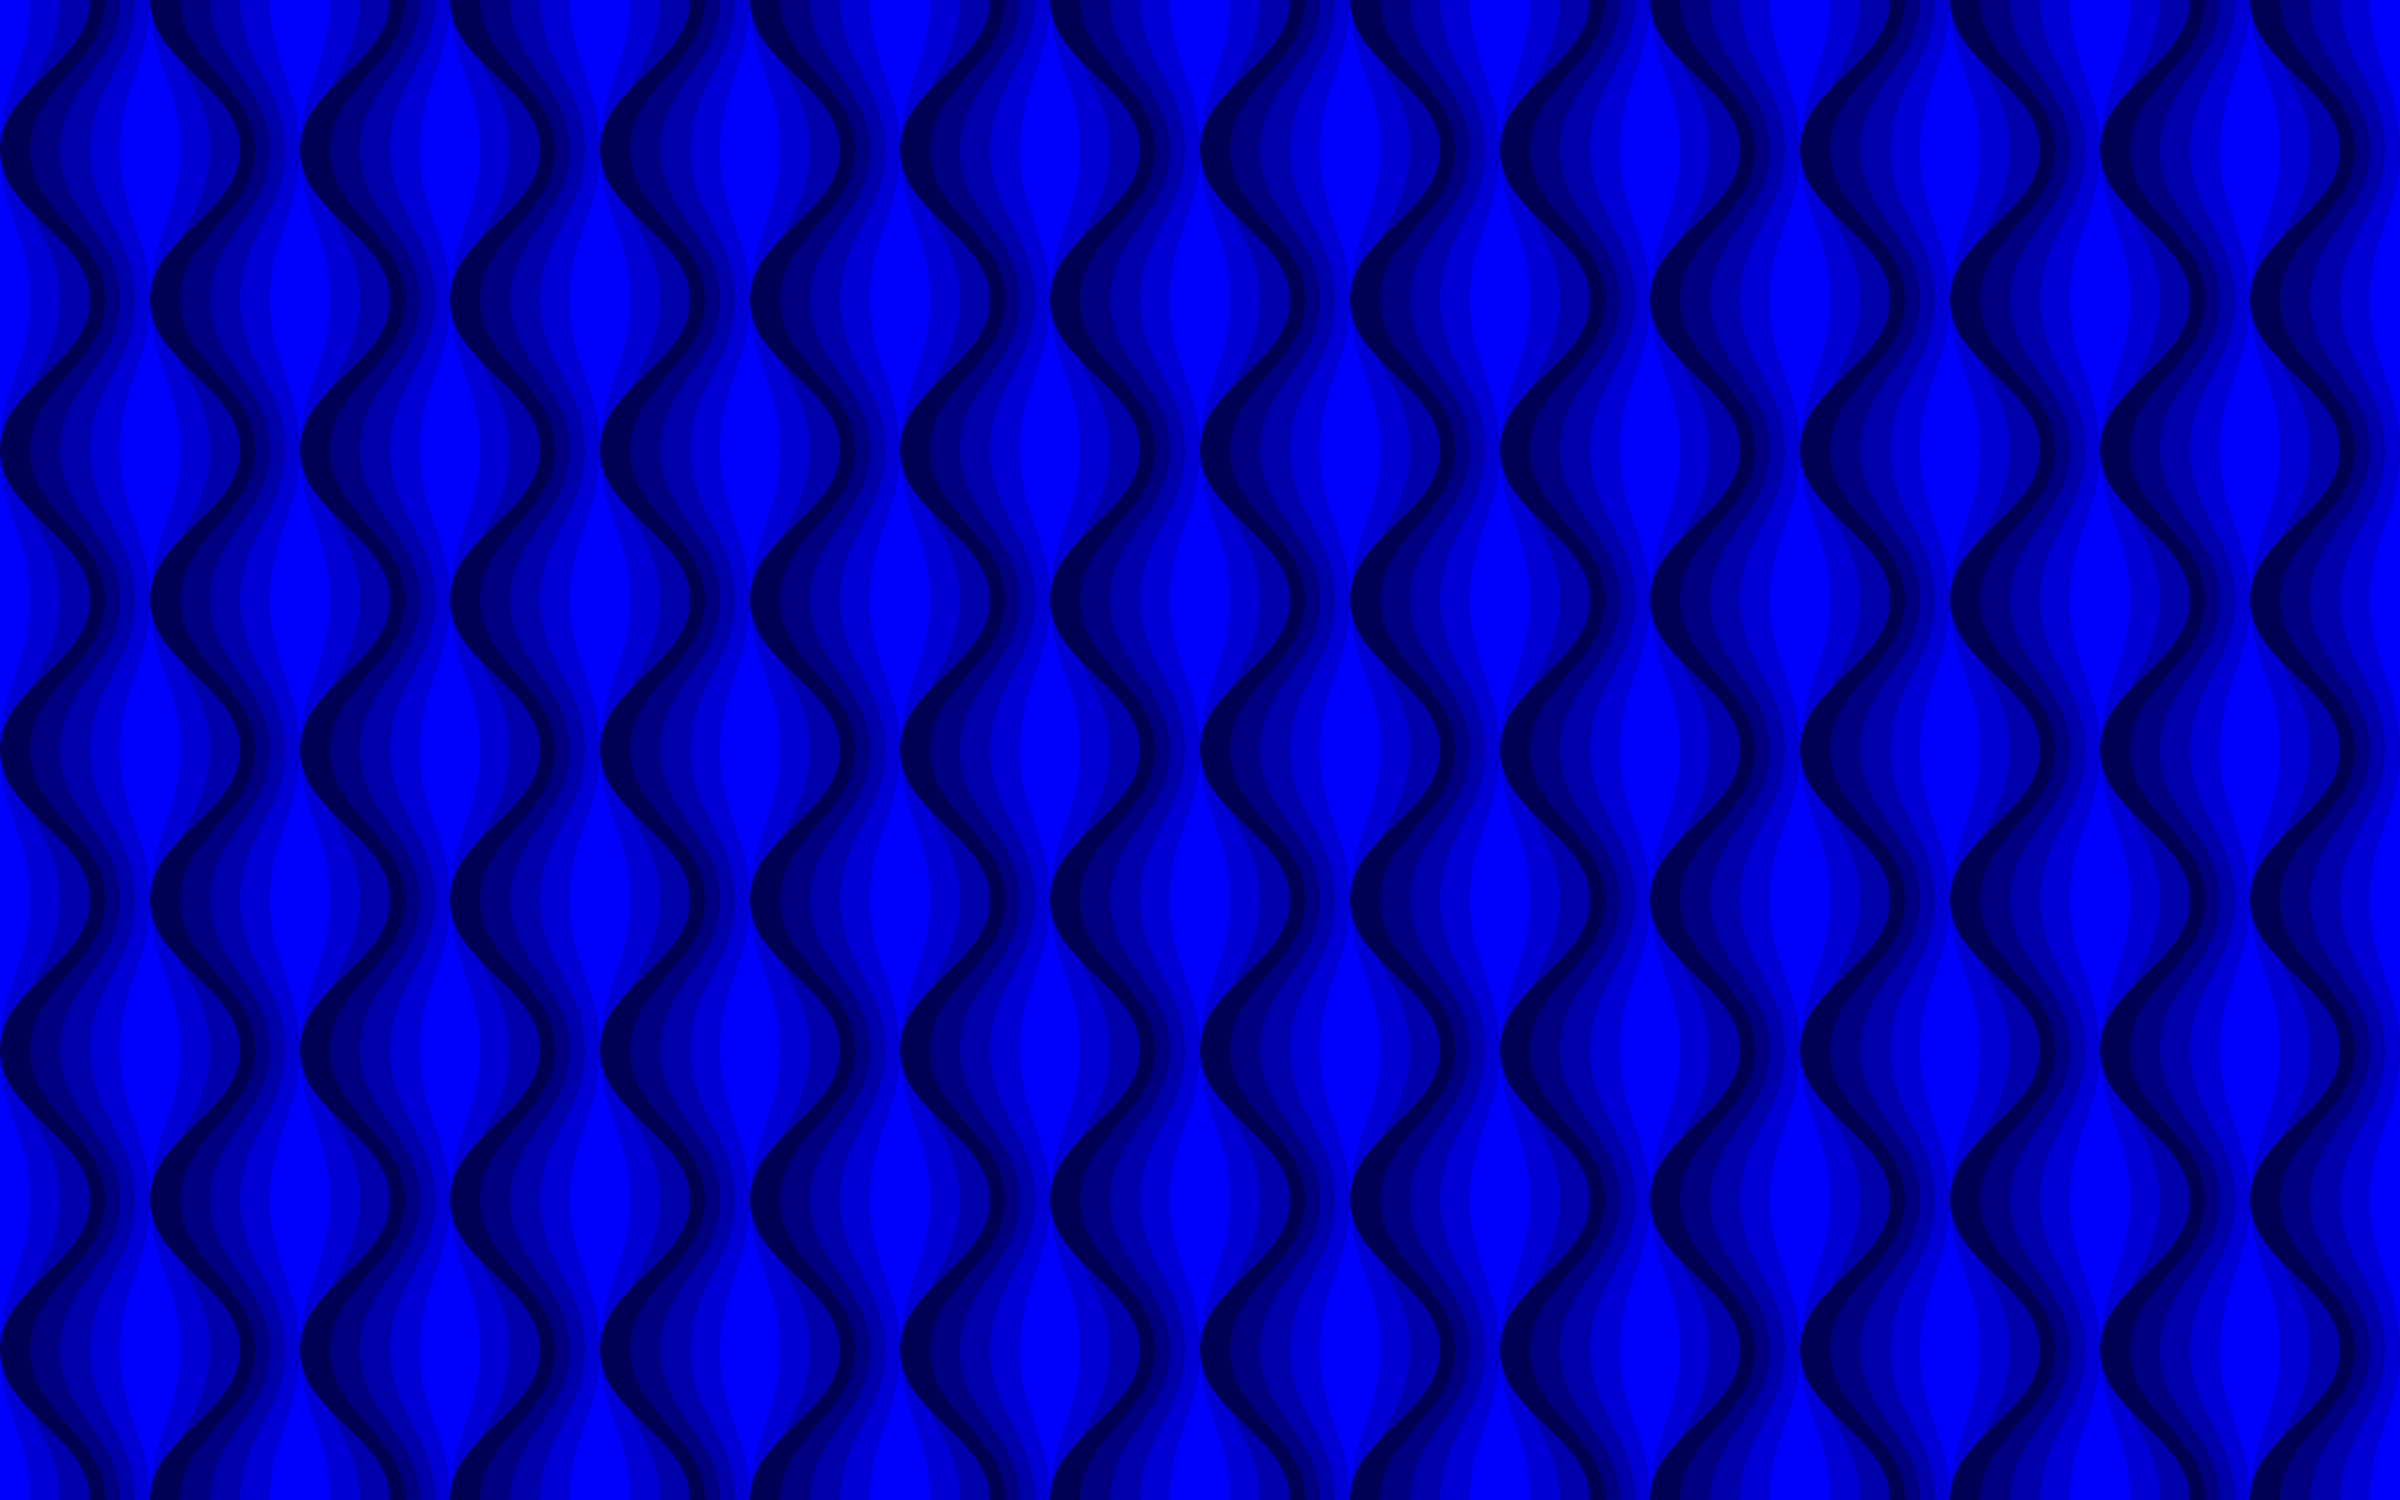 Background pattern 295 (colour 3) by Firkin